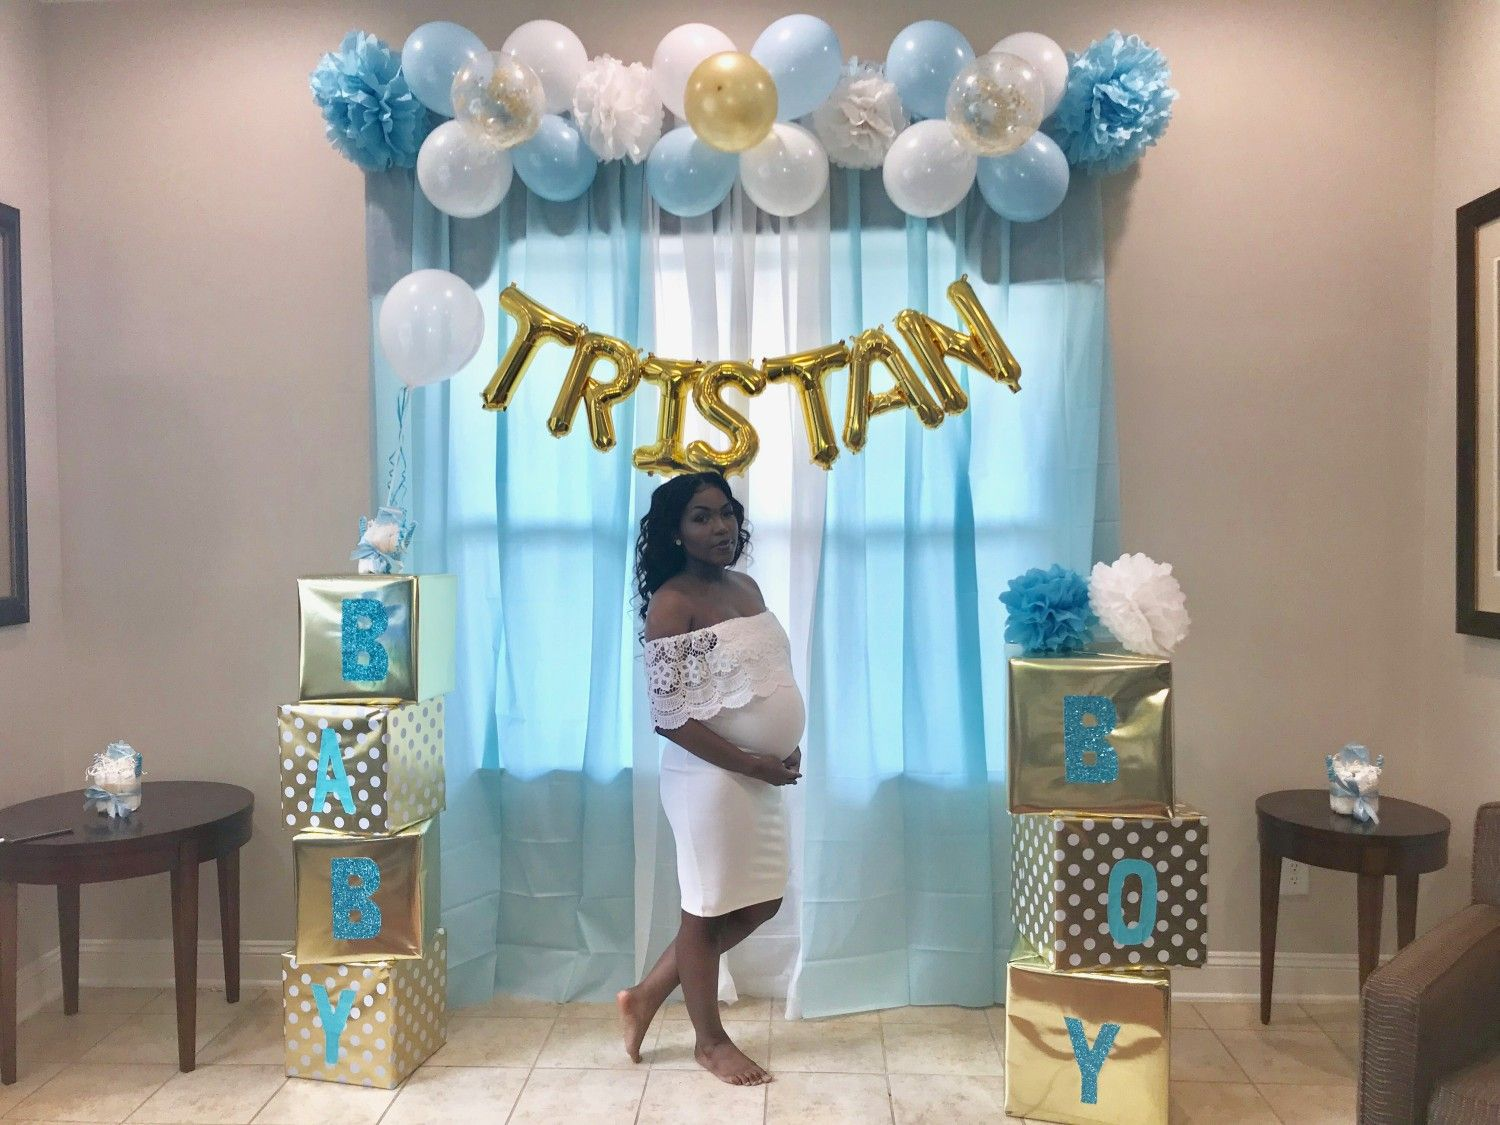 Baby shower photo backdrop | It's a boy shower | Pinterest ...